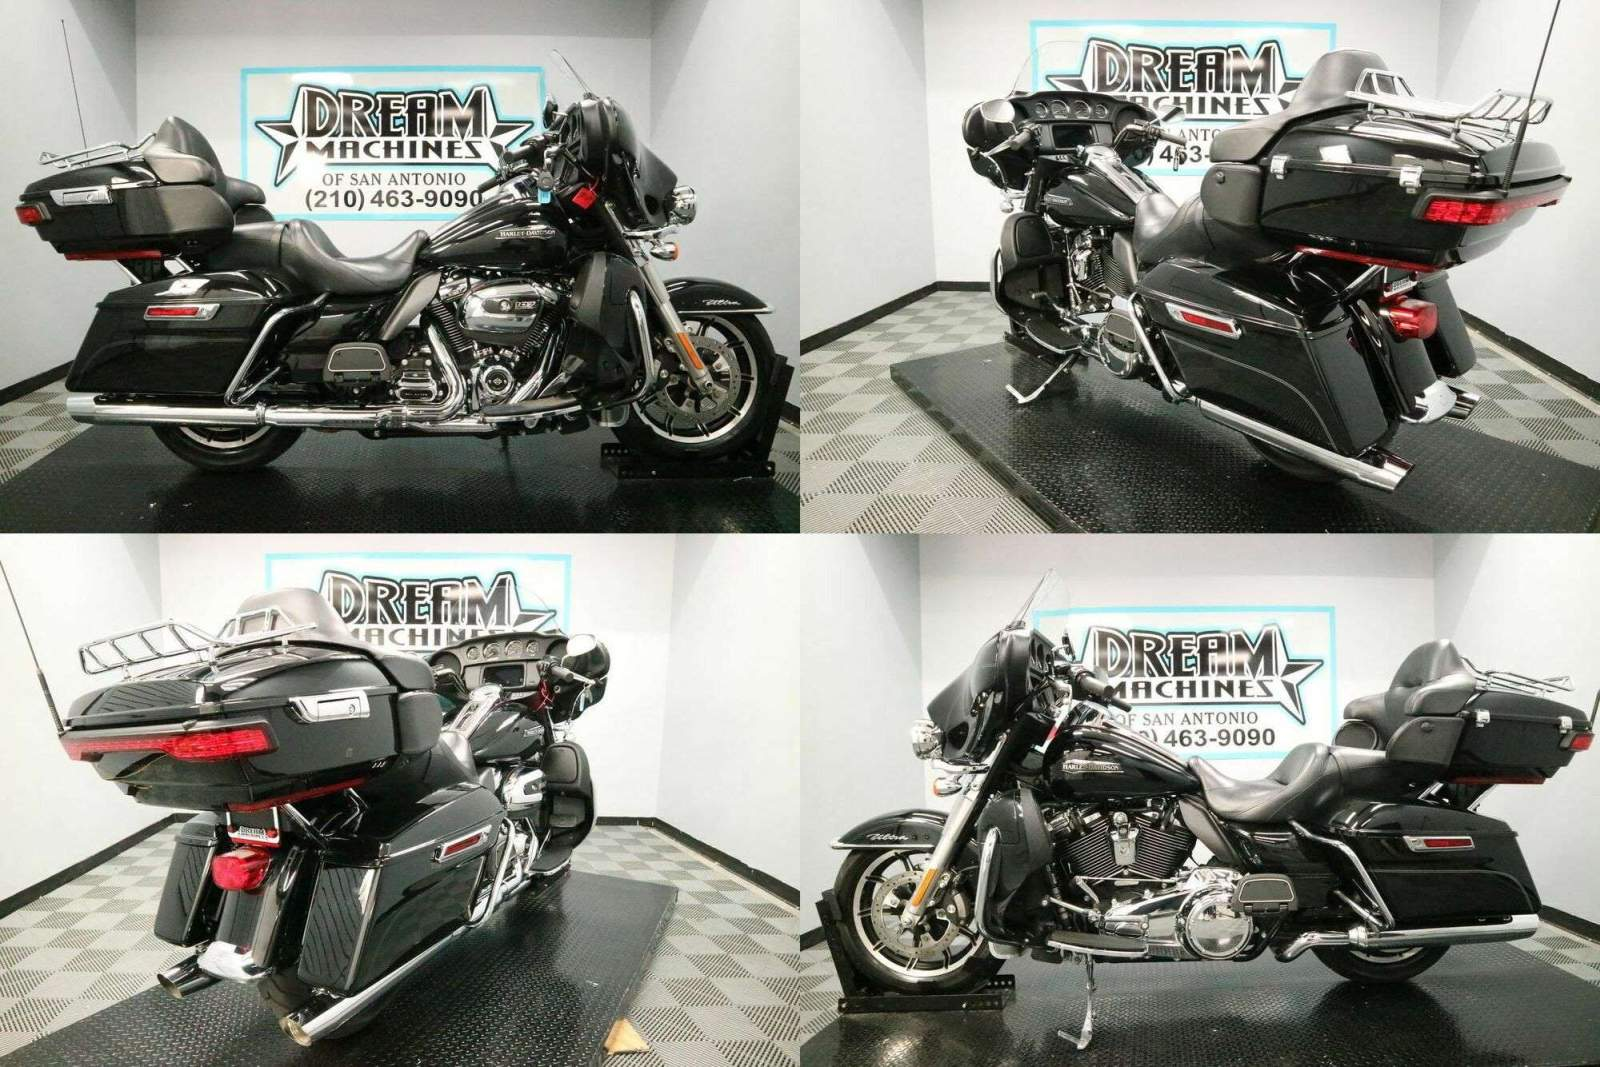 2019 Harley-Davidson FLHTCU - Electra Glide Ultra Classic Black used for sale near me